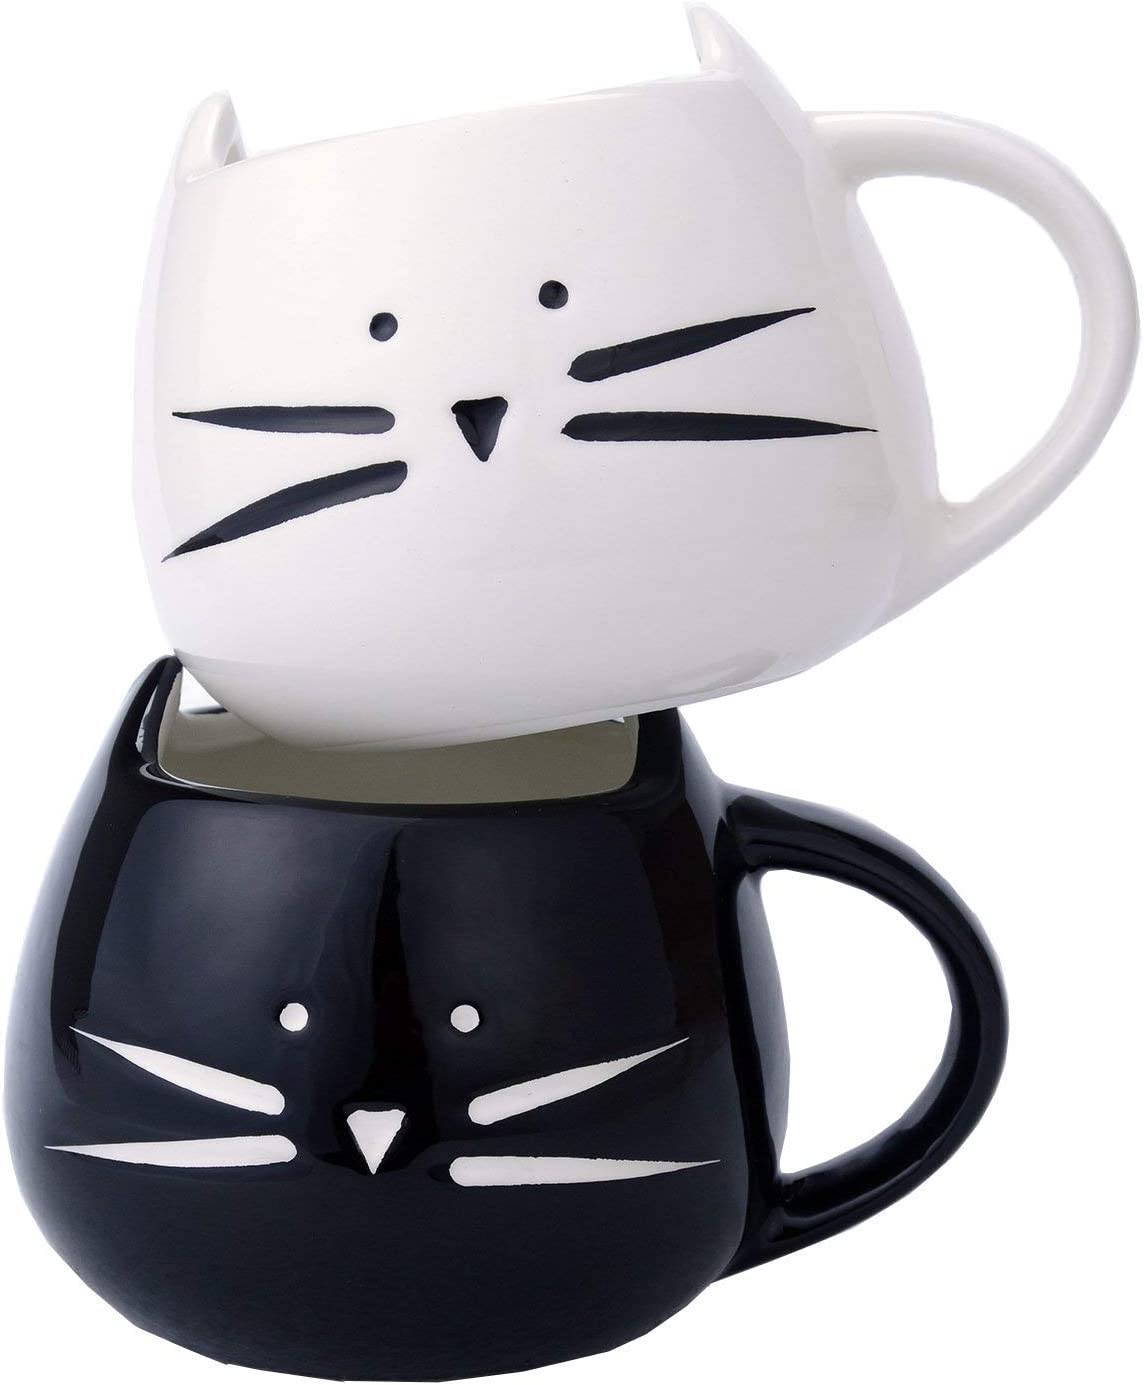 Ilyever 2 Pack Funny Cute Cat Coffee Tea Milk Ceramic Mug Cup Best Gift for Christmas and All Holliday Special Day,White+Black